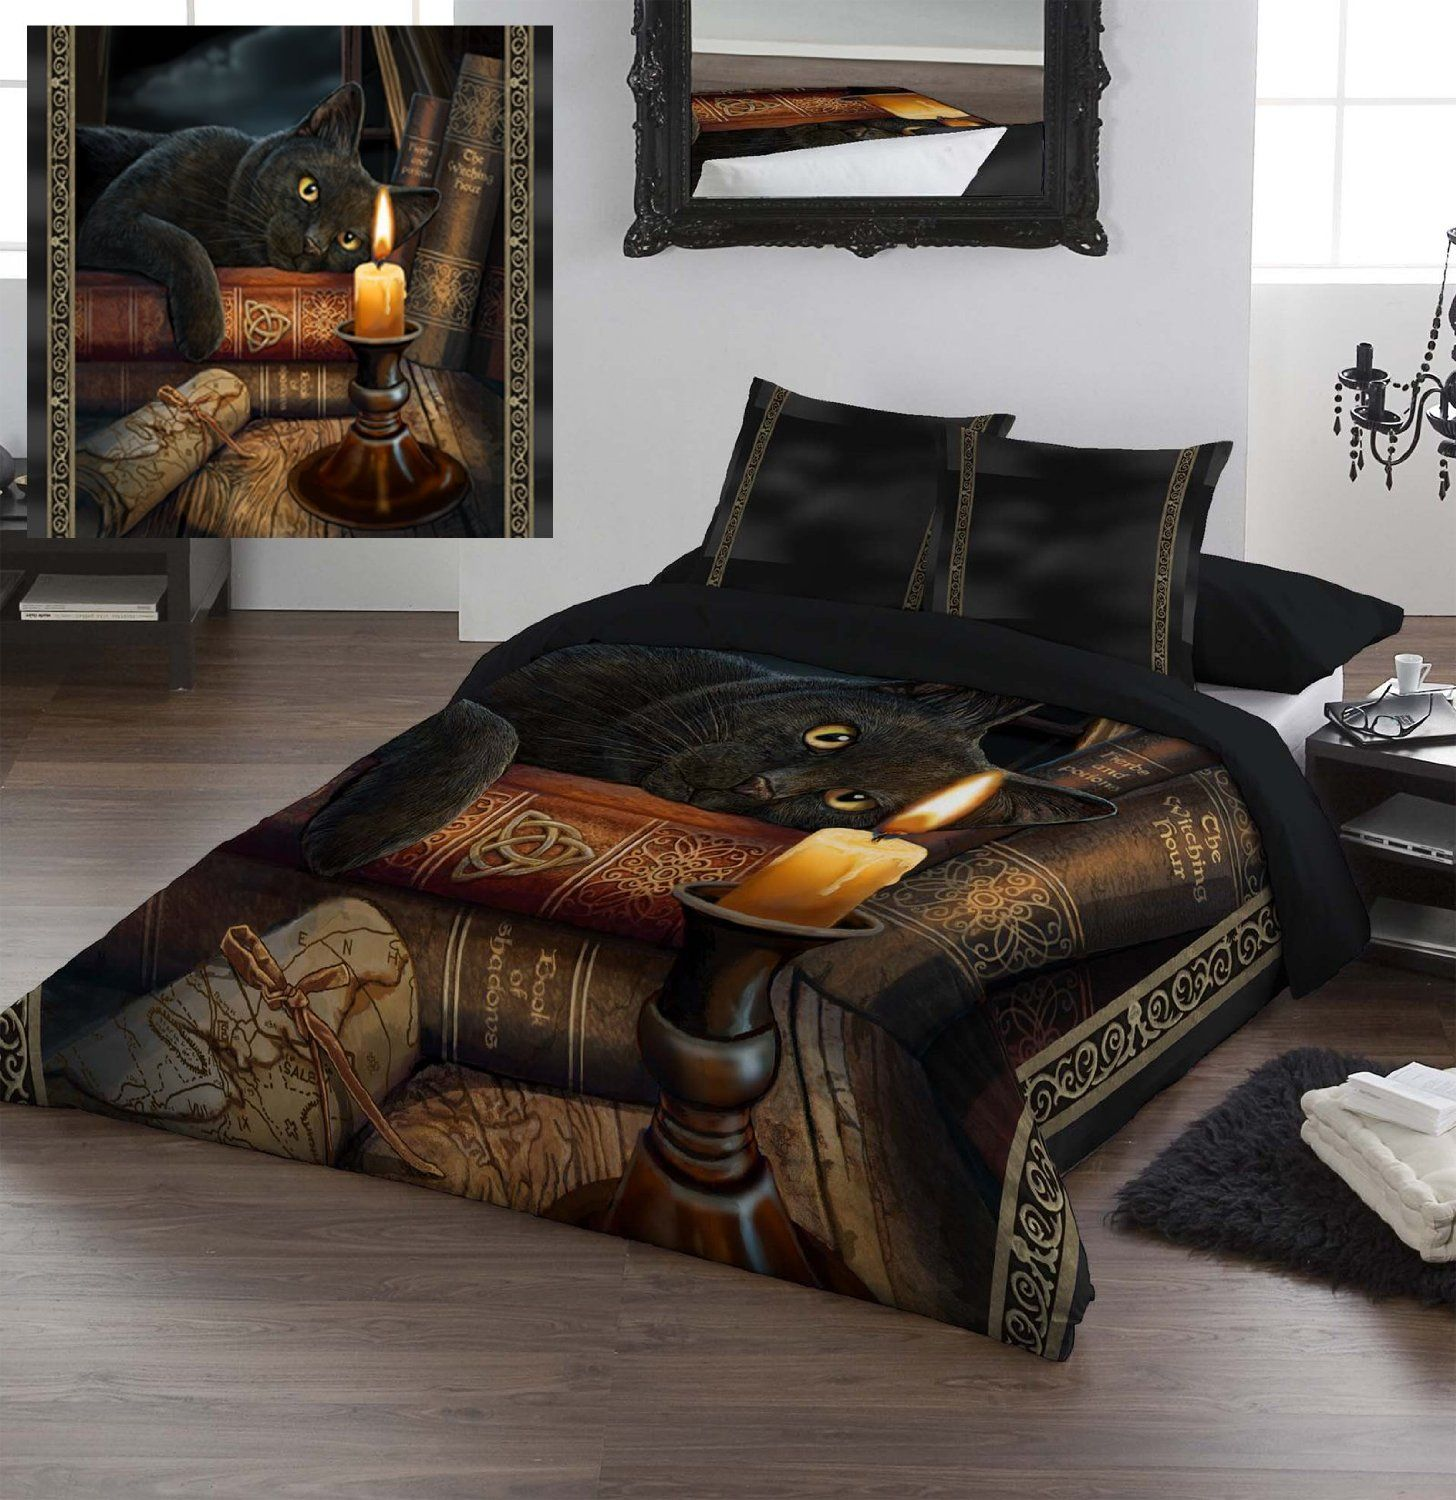 wild star home duvet cover set queen size the witching hour the witching hour by lisa parker kingsize bed duvet set pagan wiccan goth